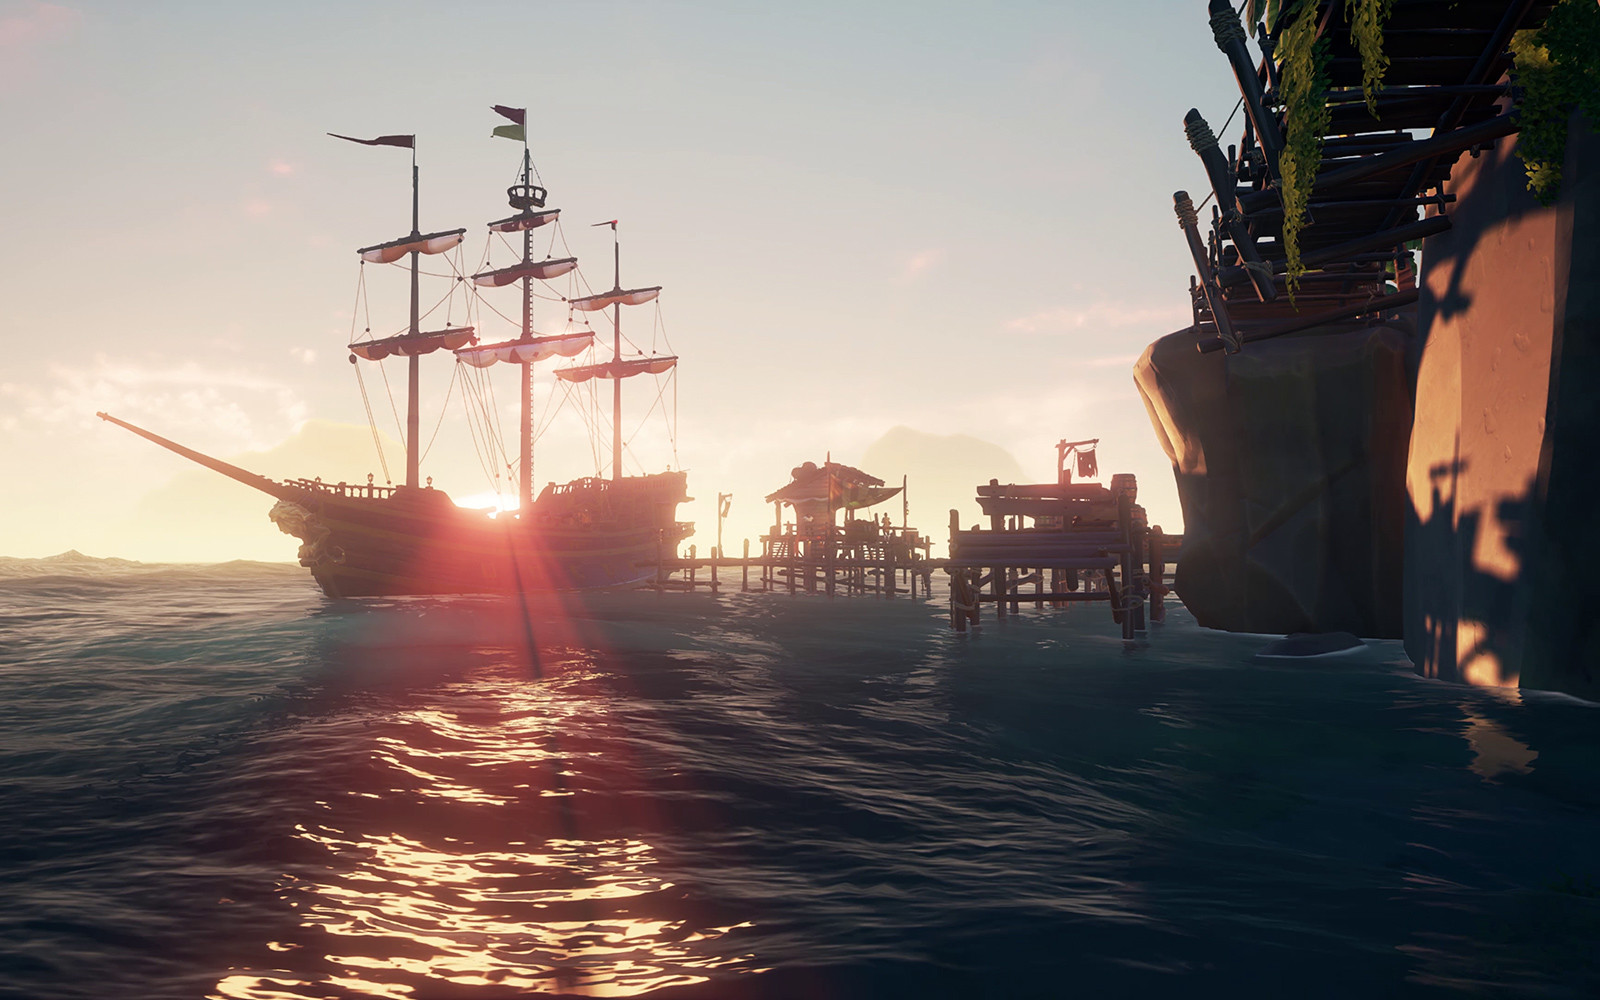 Sea of Thieves closed beta extended two days as problems continue